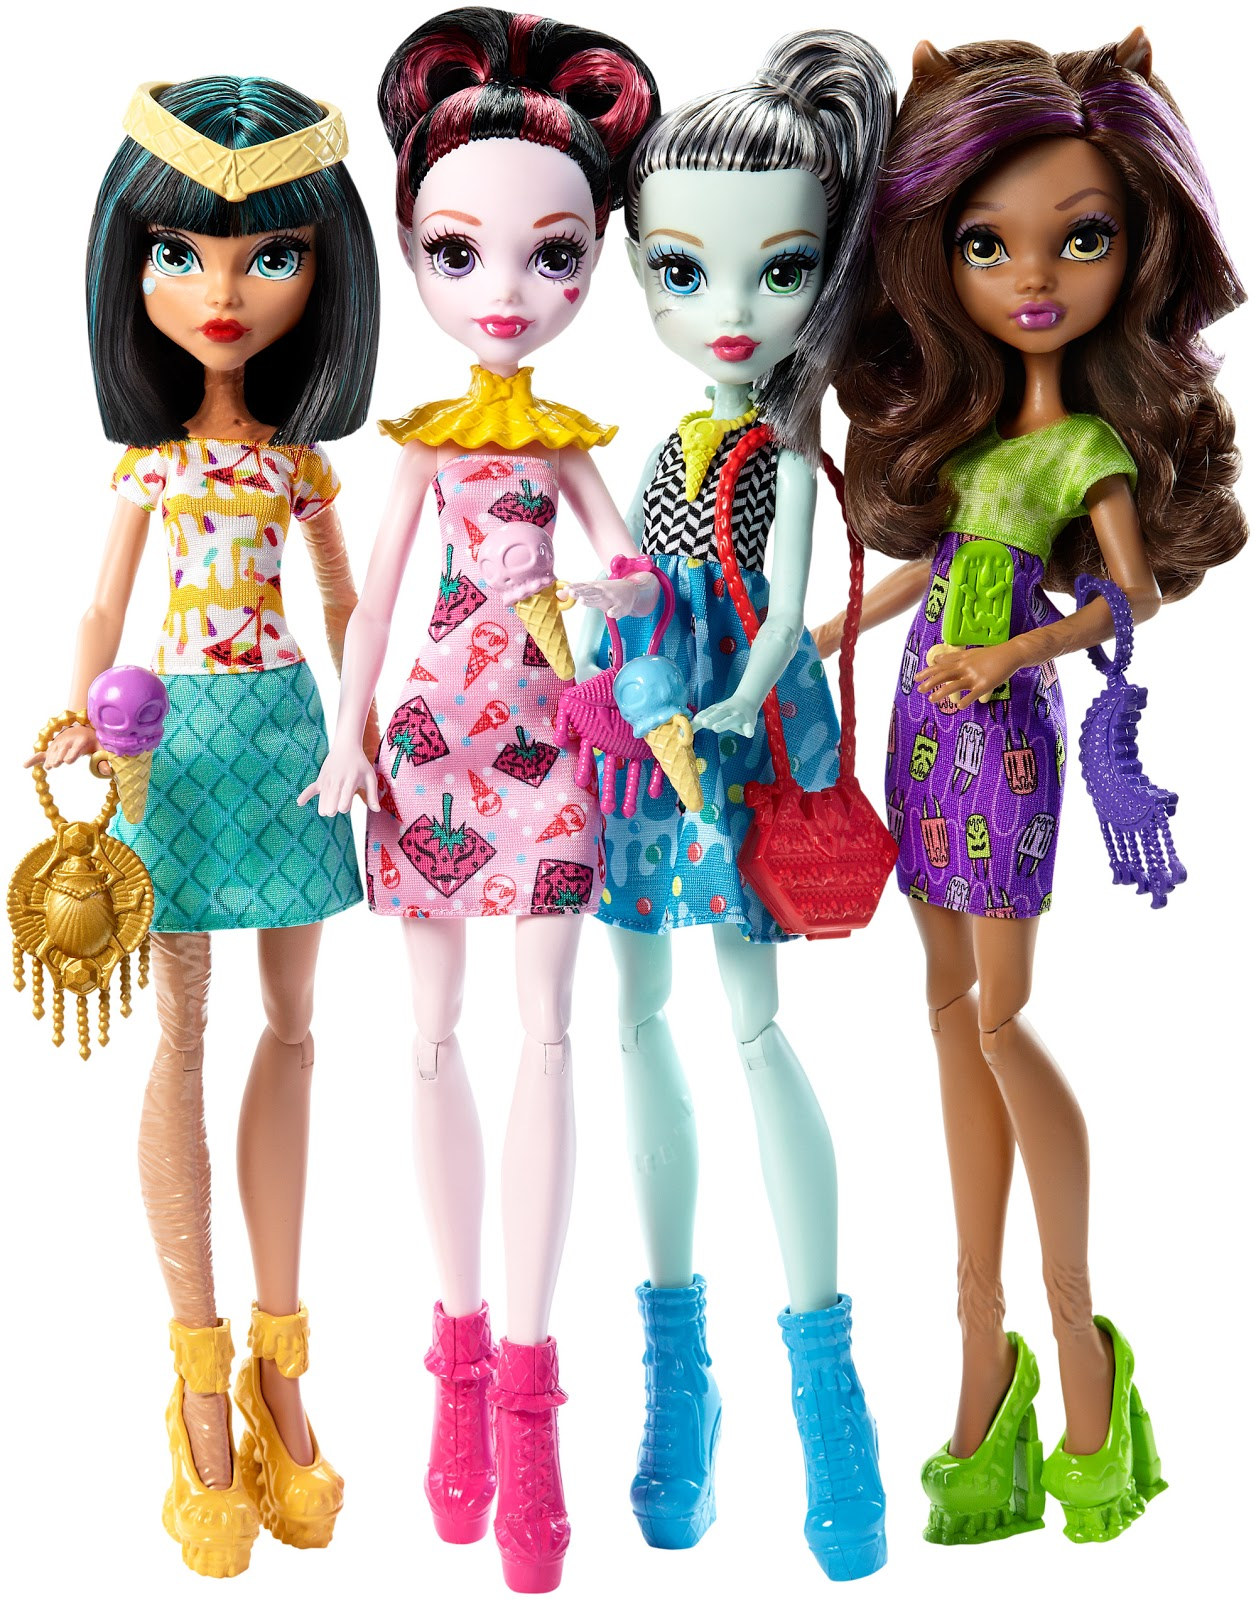 Monster High Pretty Fotos Promocionales Del Pack De